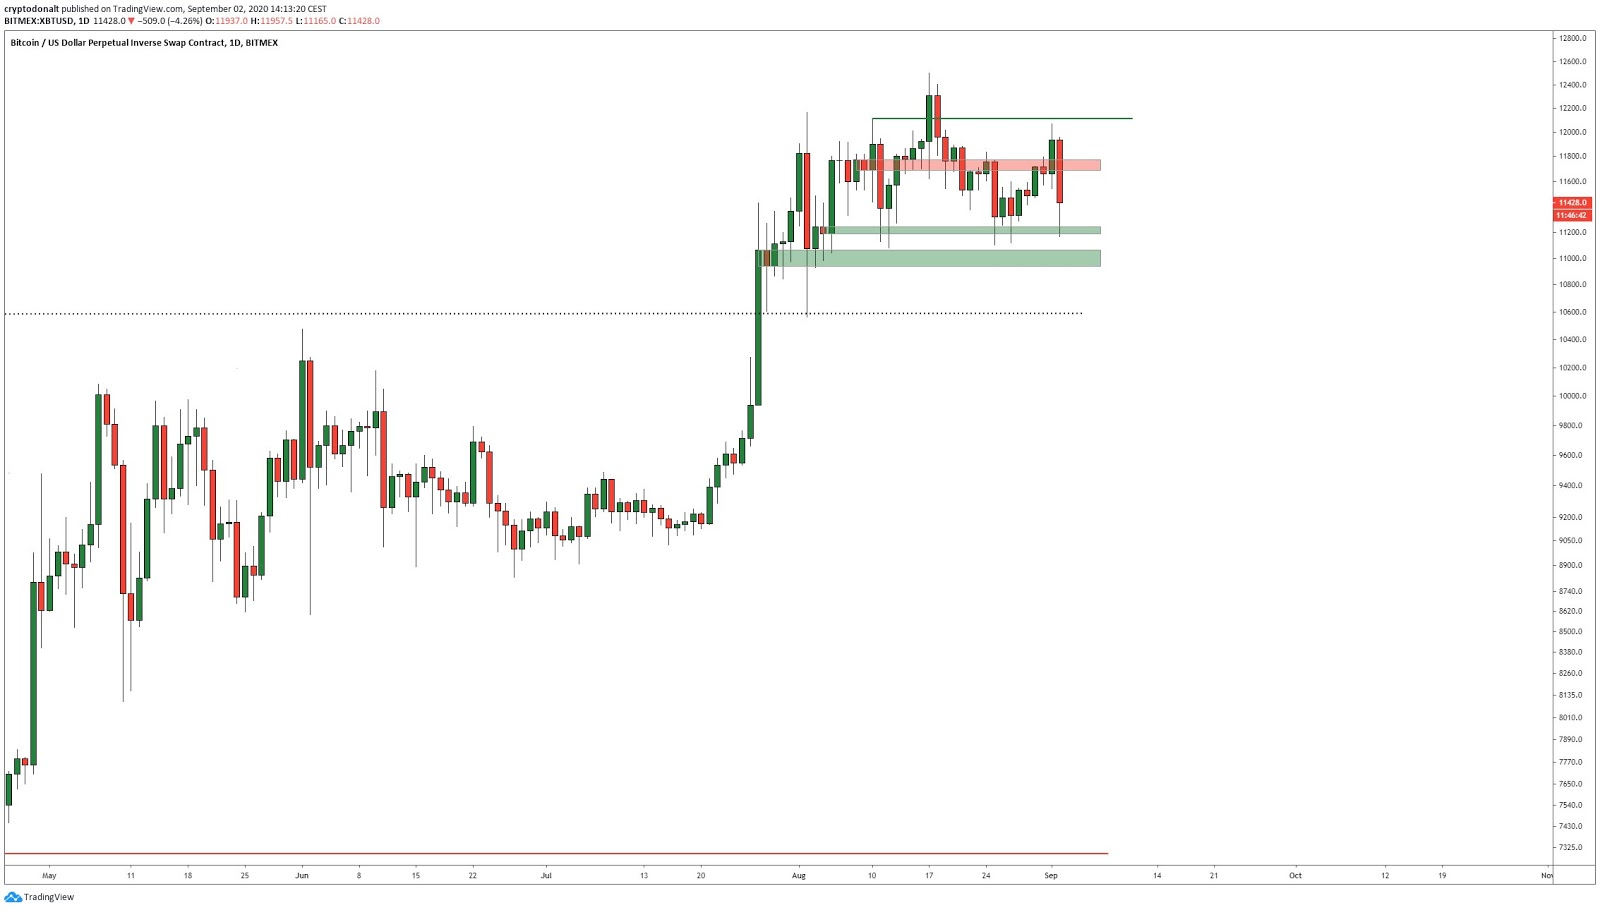 The daily price chart of Bitcoin with key levels